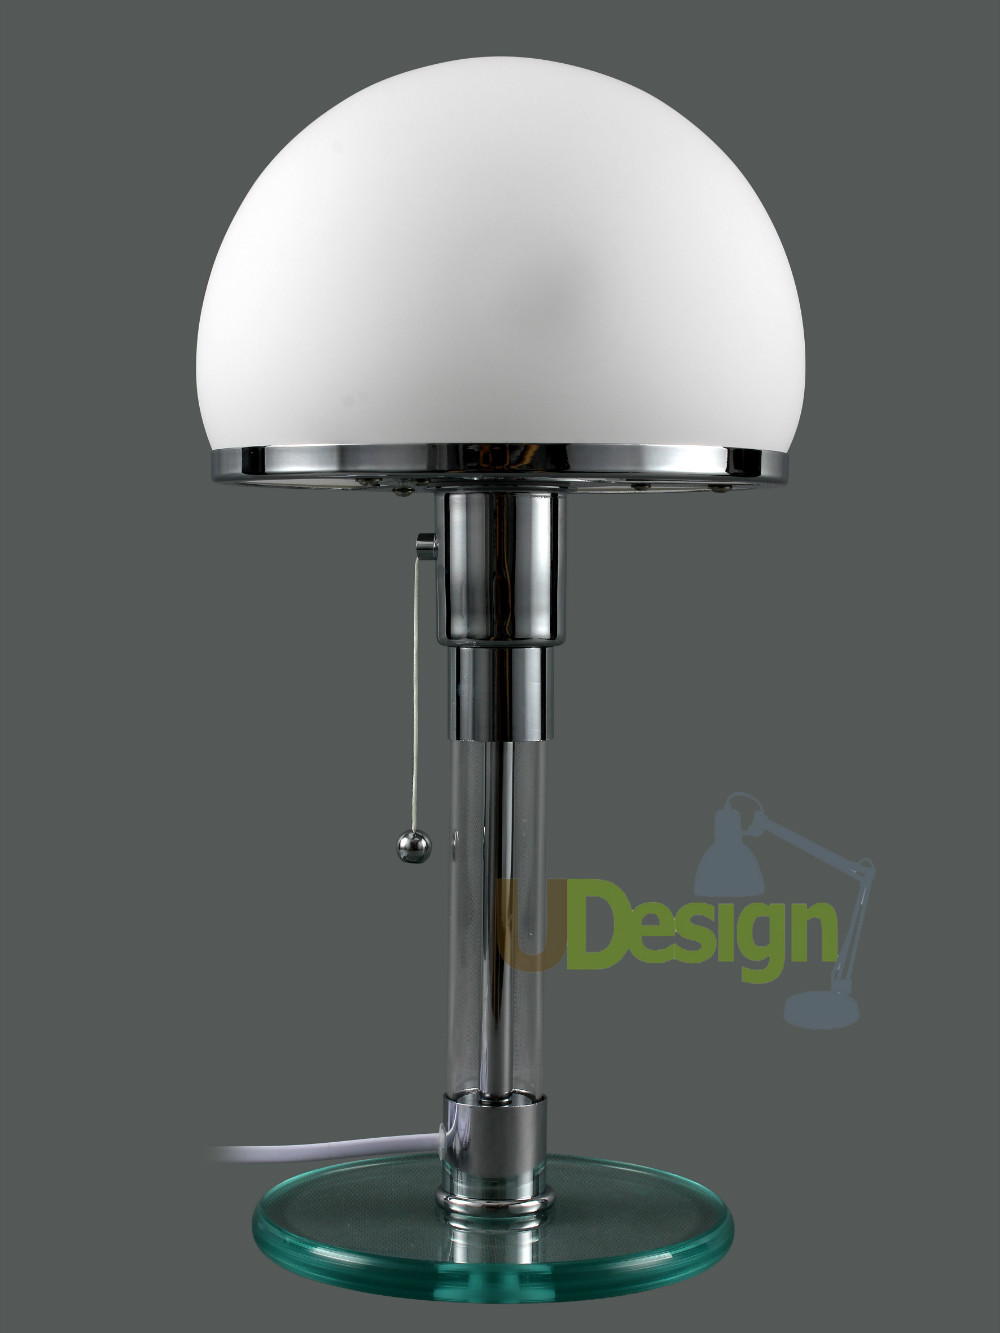 (Shipping cost can be negotiated) Replica Bauhaus lamp Wilhelm Wagenfeld table lamp -Bauhaus lamp shipping cost